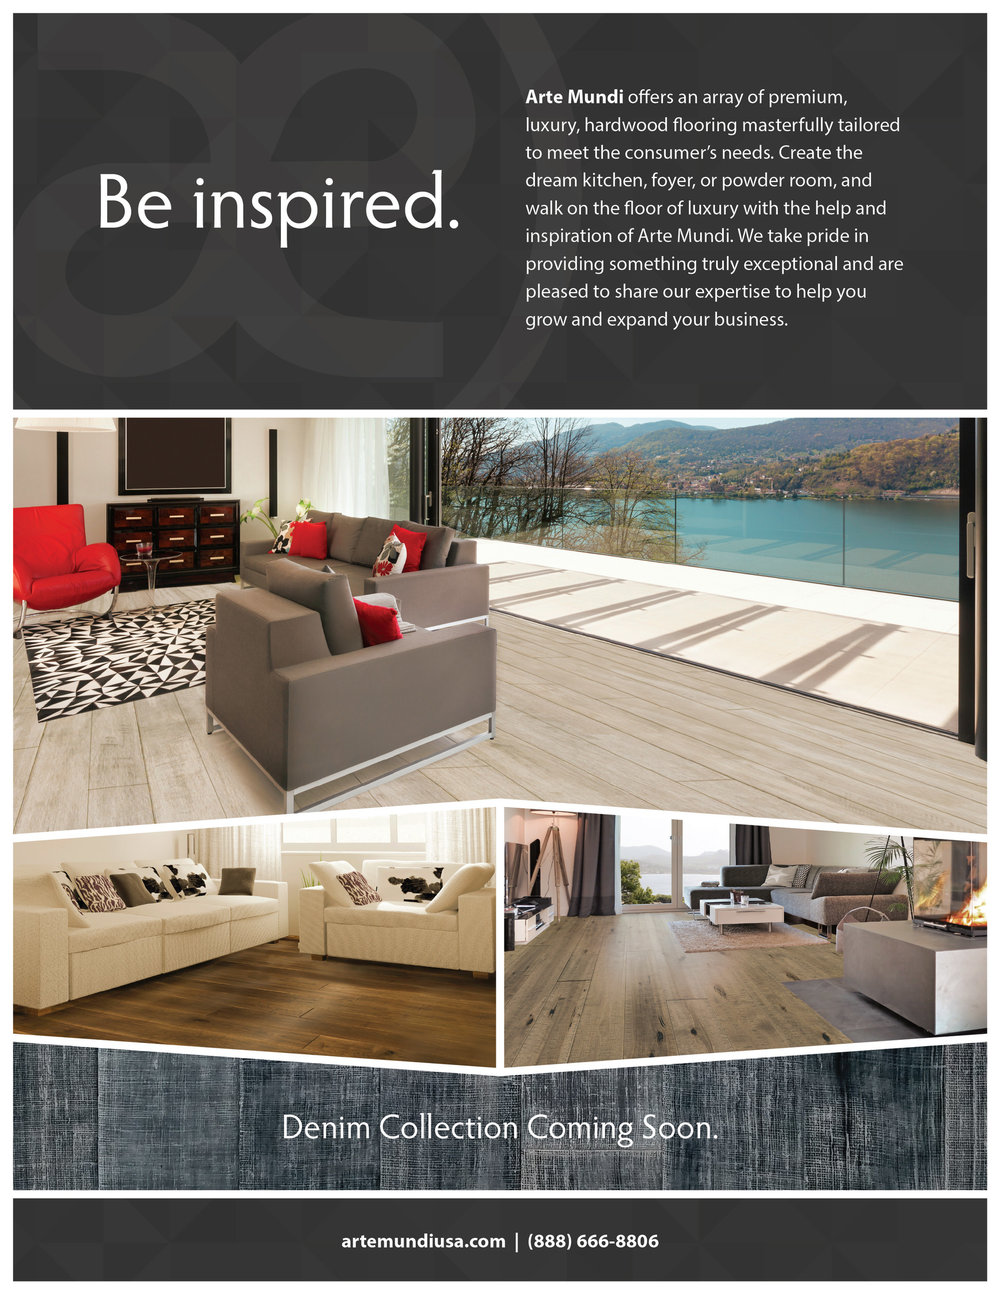 In this month's issue of Floor Covering News, we featured different flooring inspirations for your home.